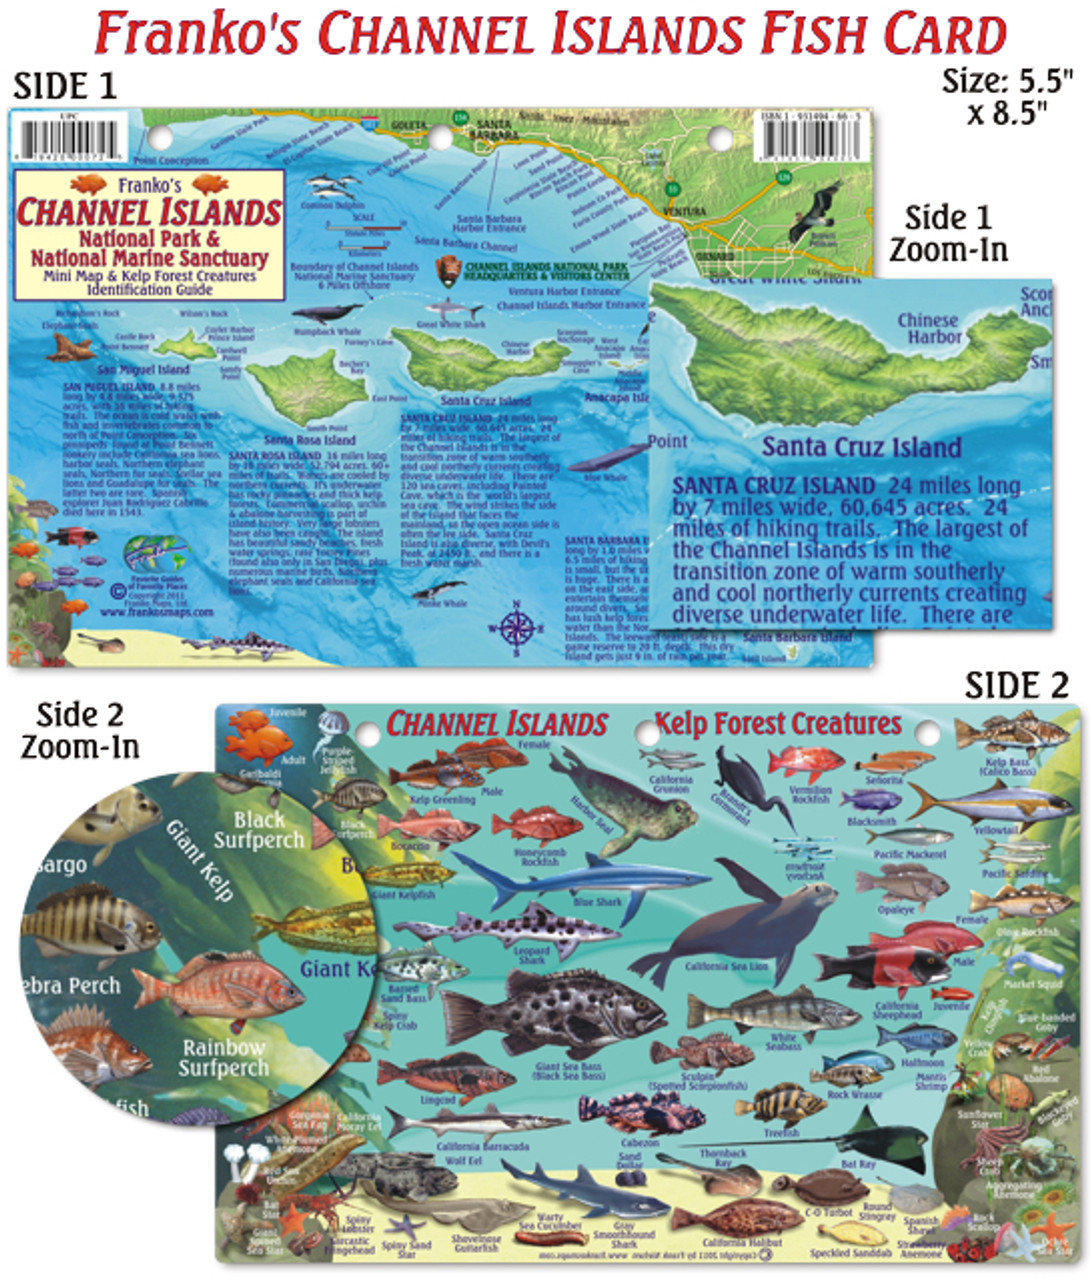 Channel Islands Mini Map & Kelp Forest Creatures (fish card) - Mail ...